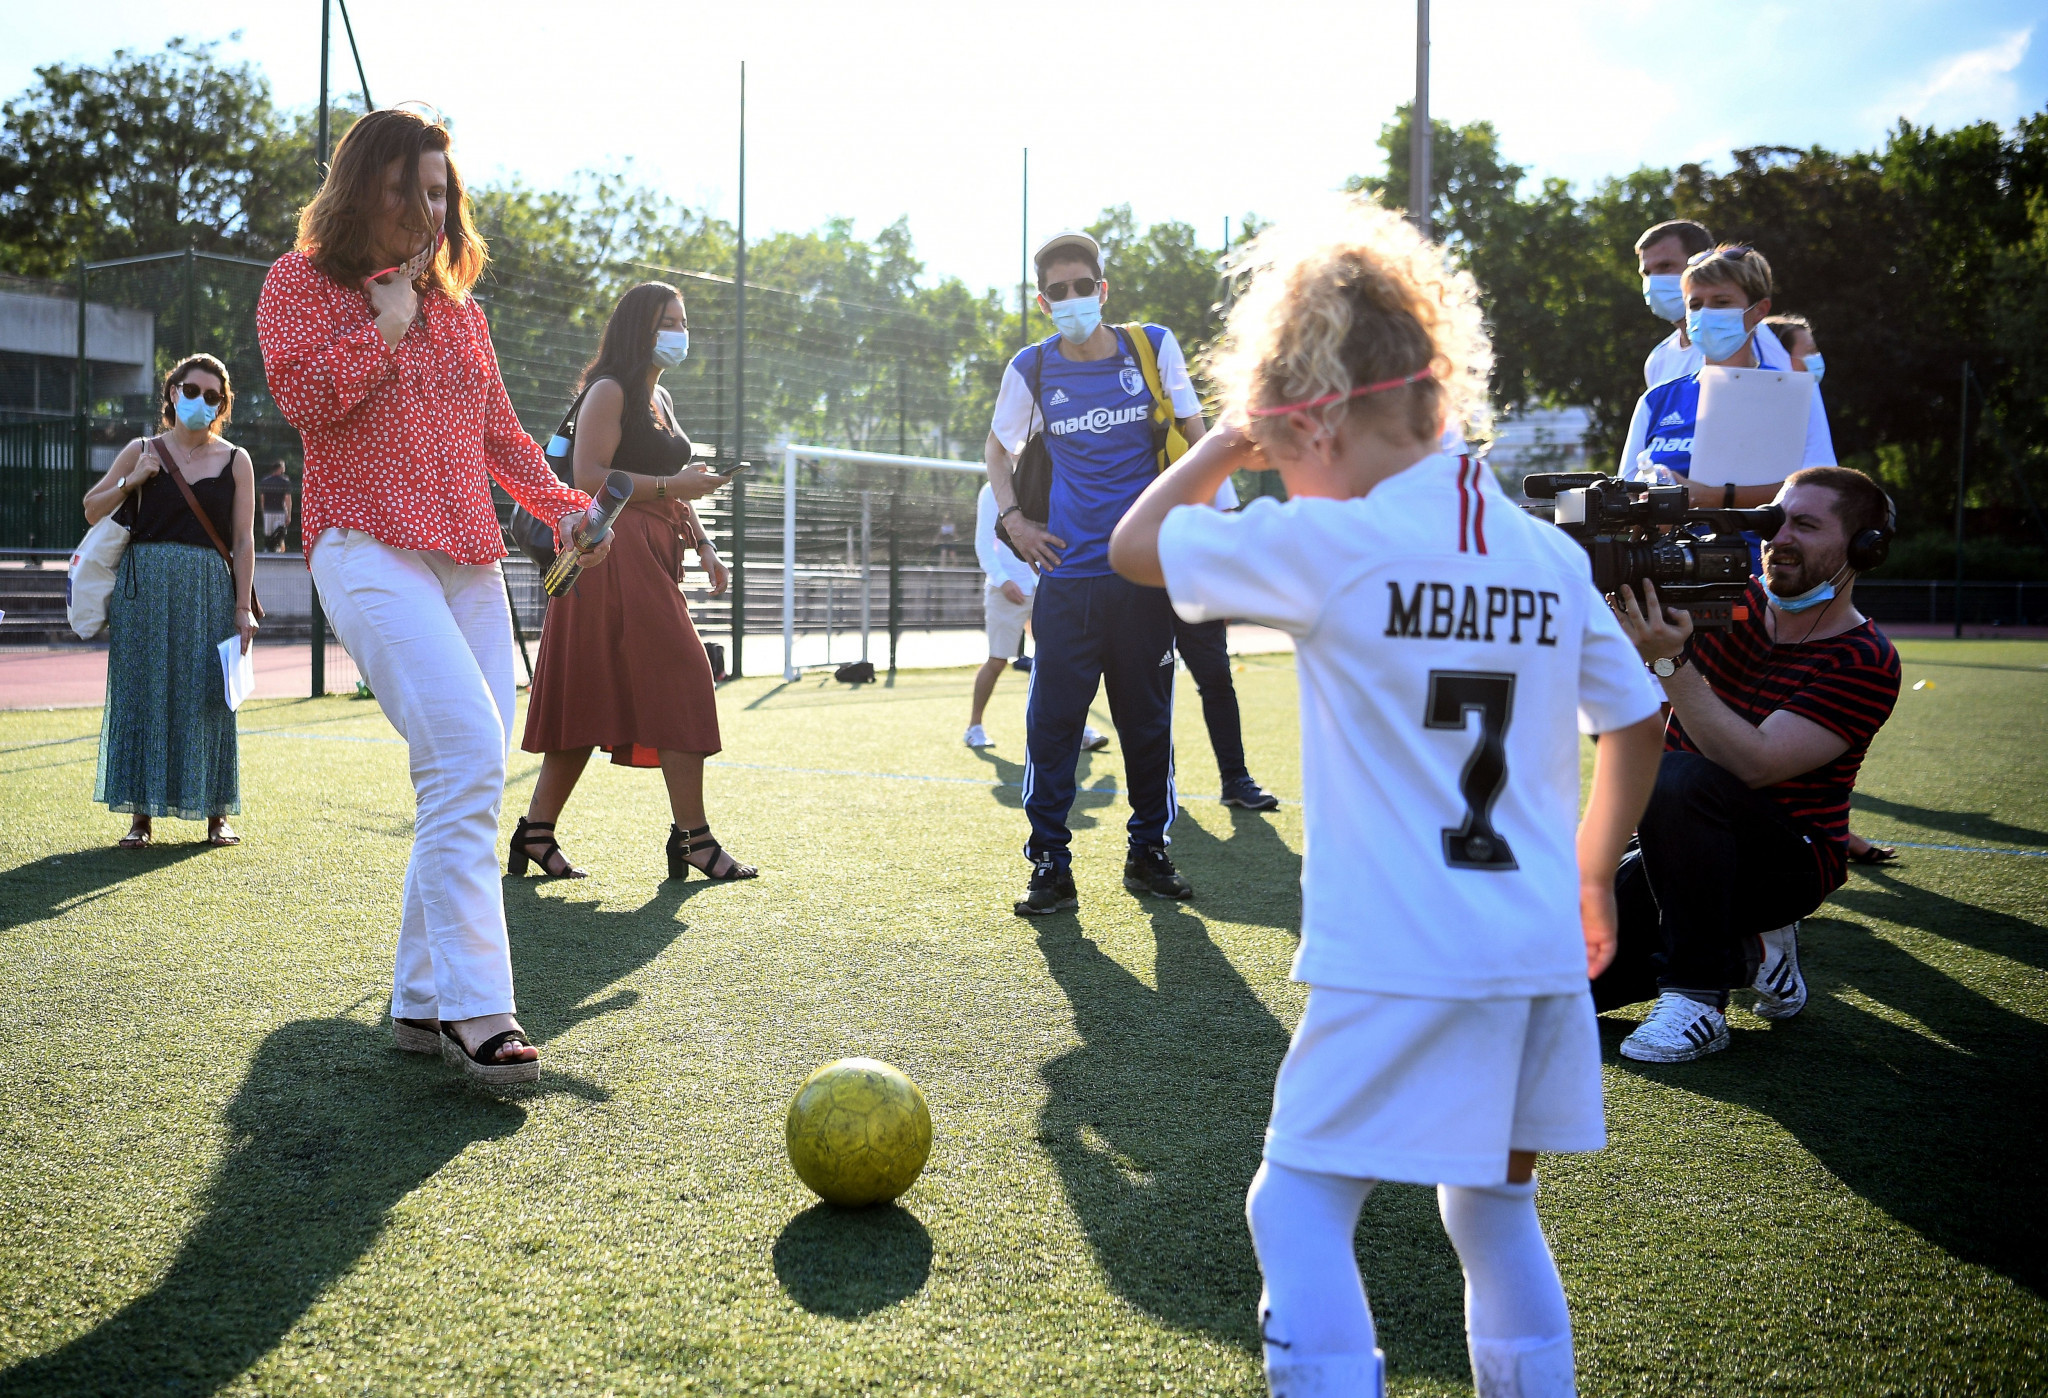 Fourteen projects are set to receive a slice of €100,000 to provide opportunities for young girls and women to play sport on public spaces ©Getty Images